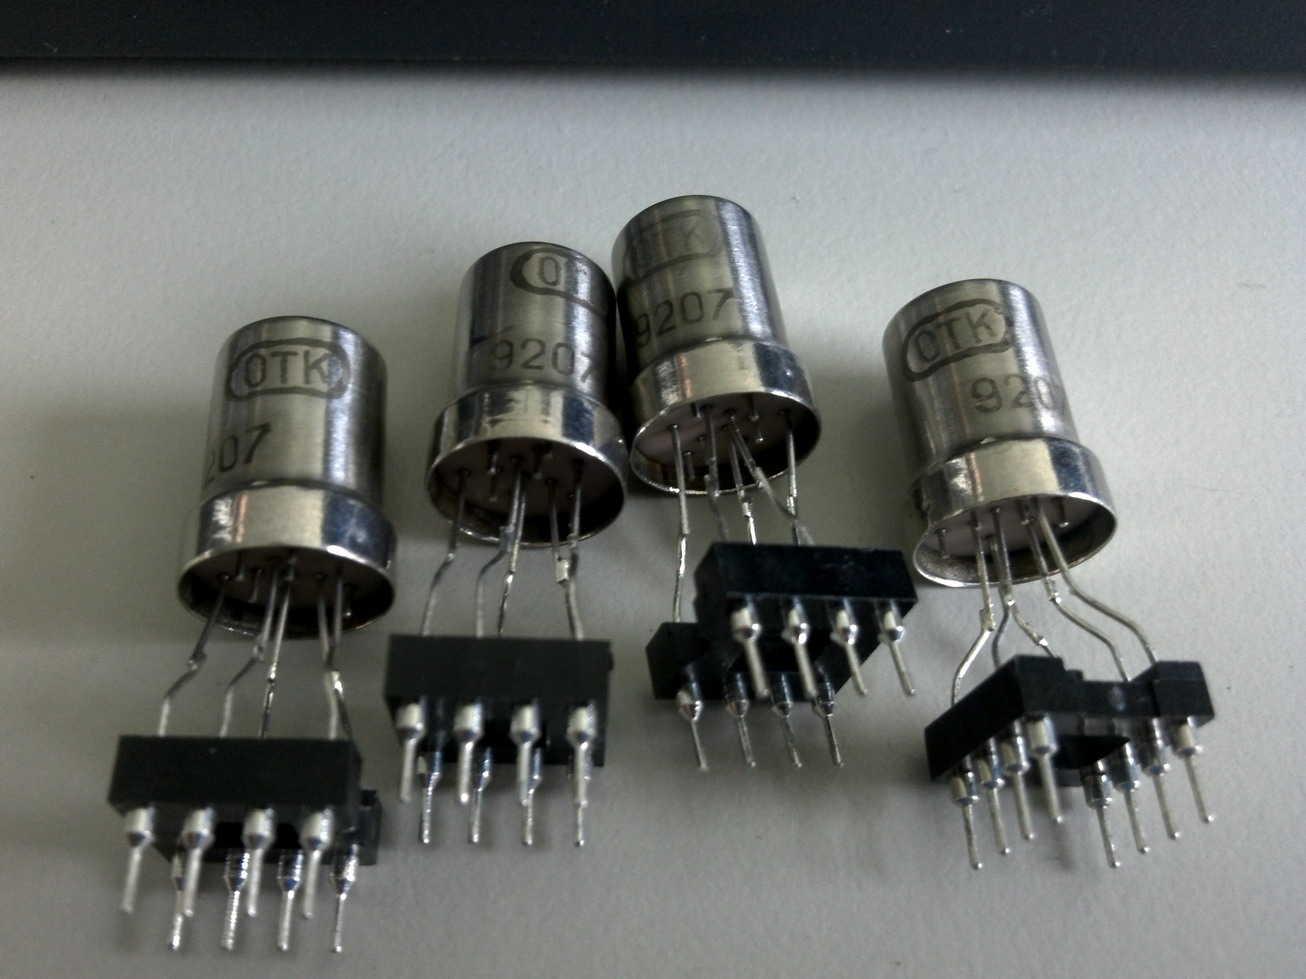 02-Nuvistors installed on the socket.jpg